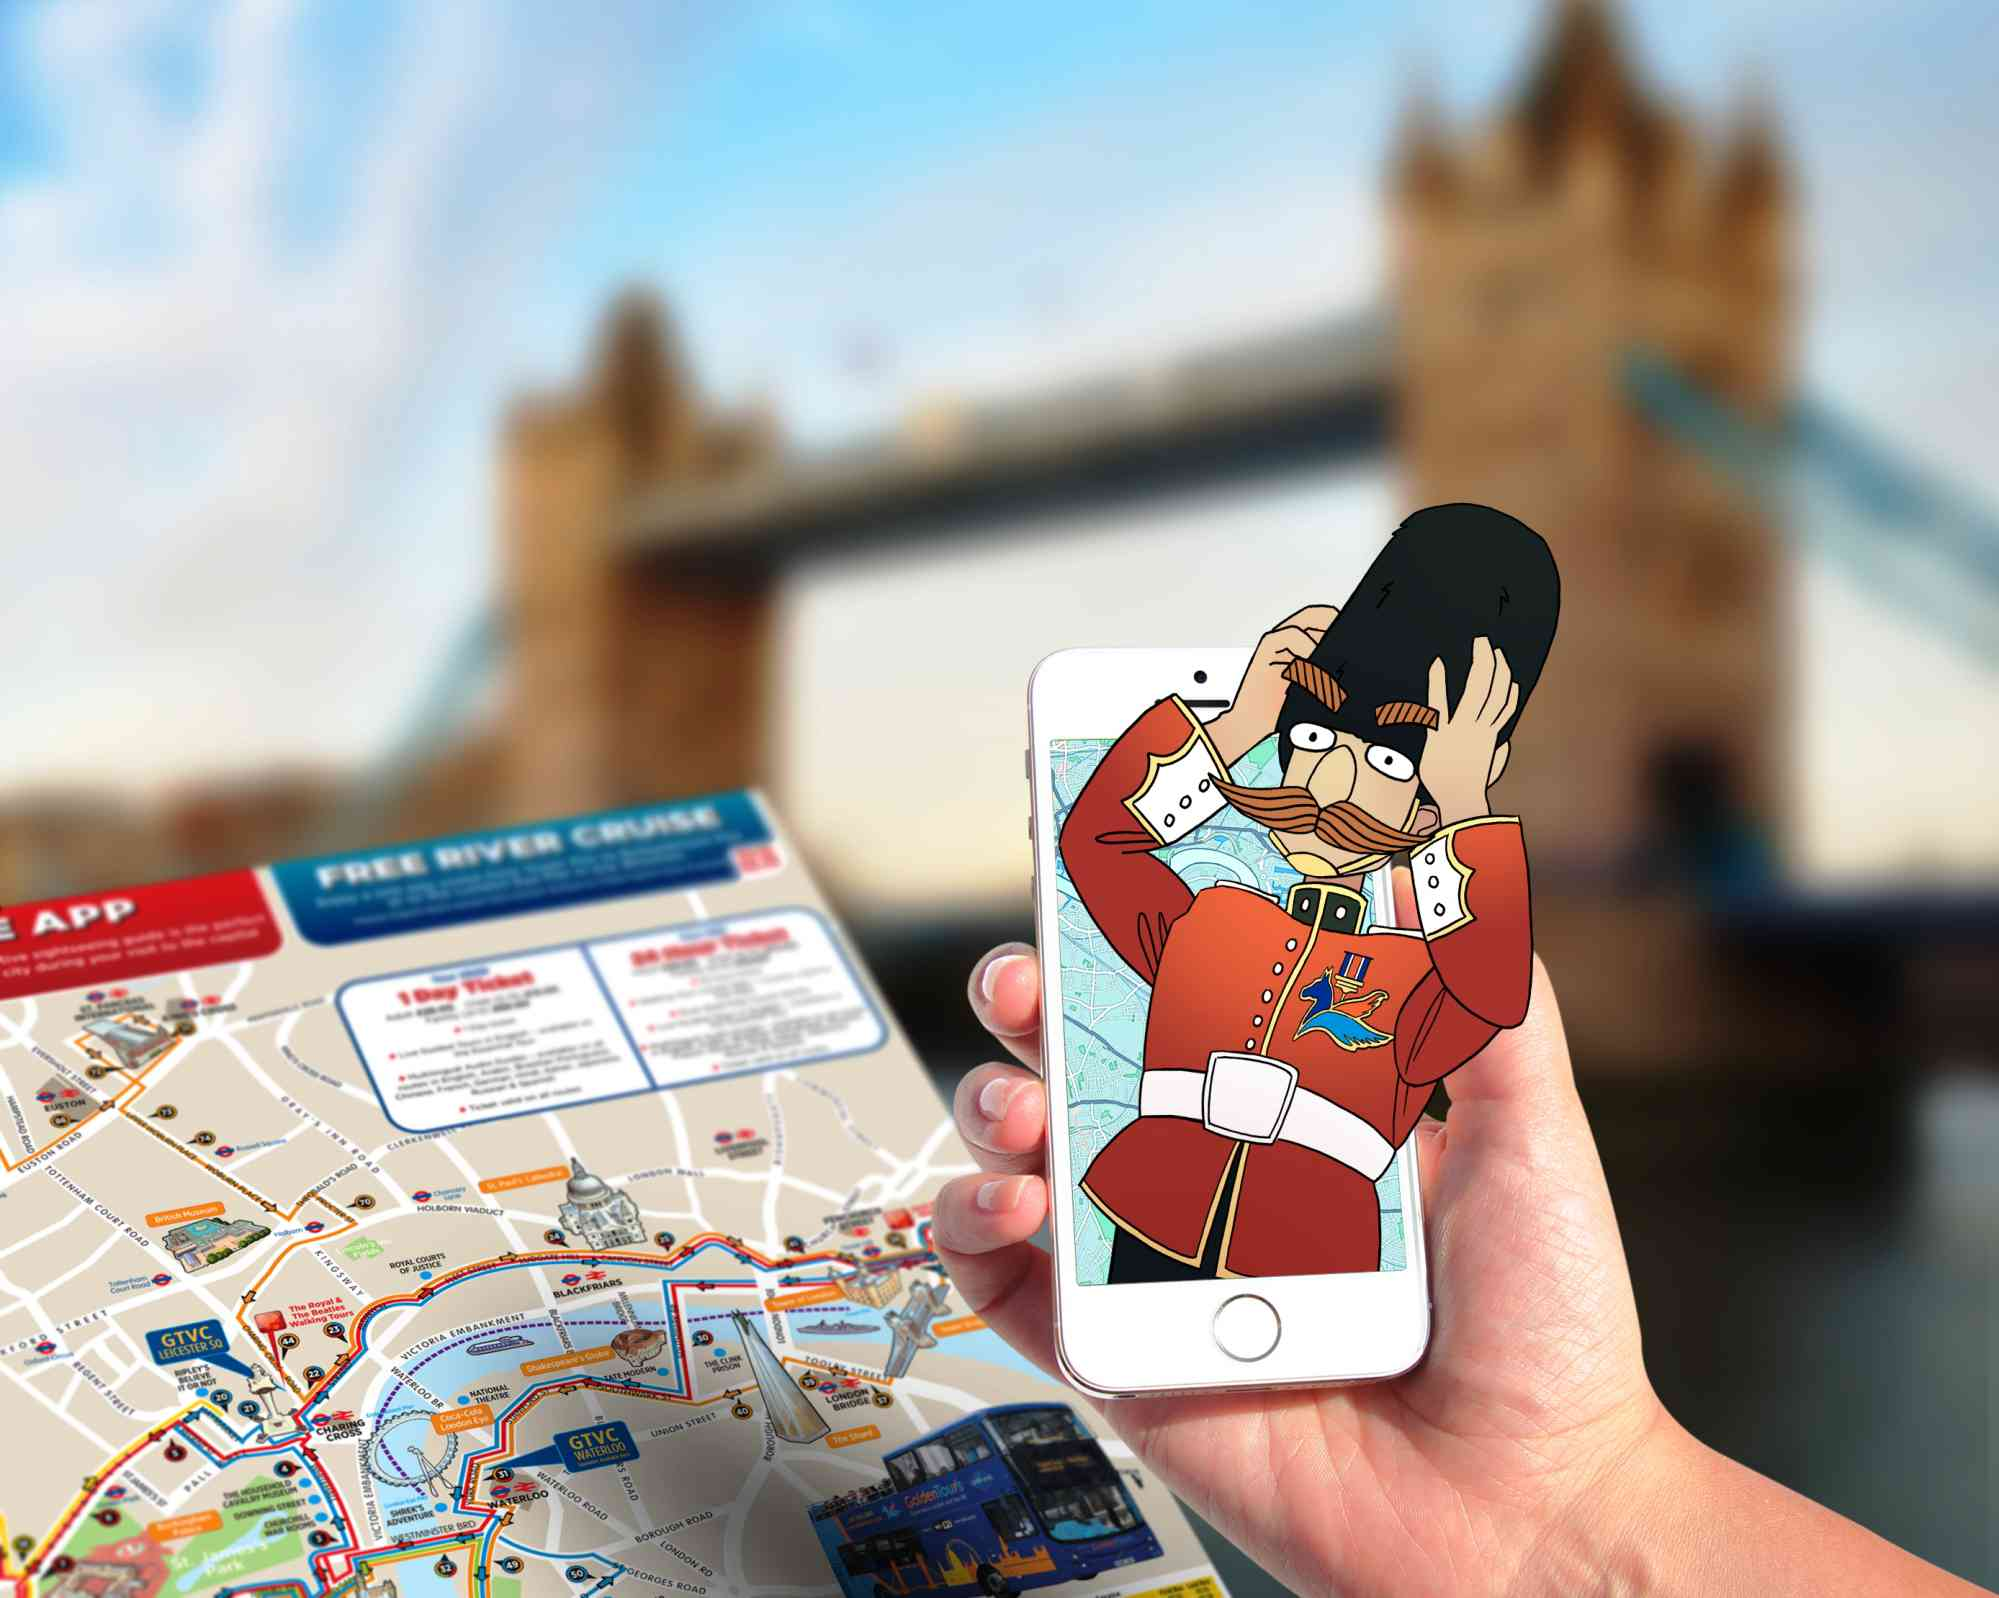 Holovis partners Golden Tours to create London's first ever augmented reality treasure hunt